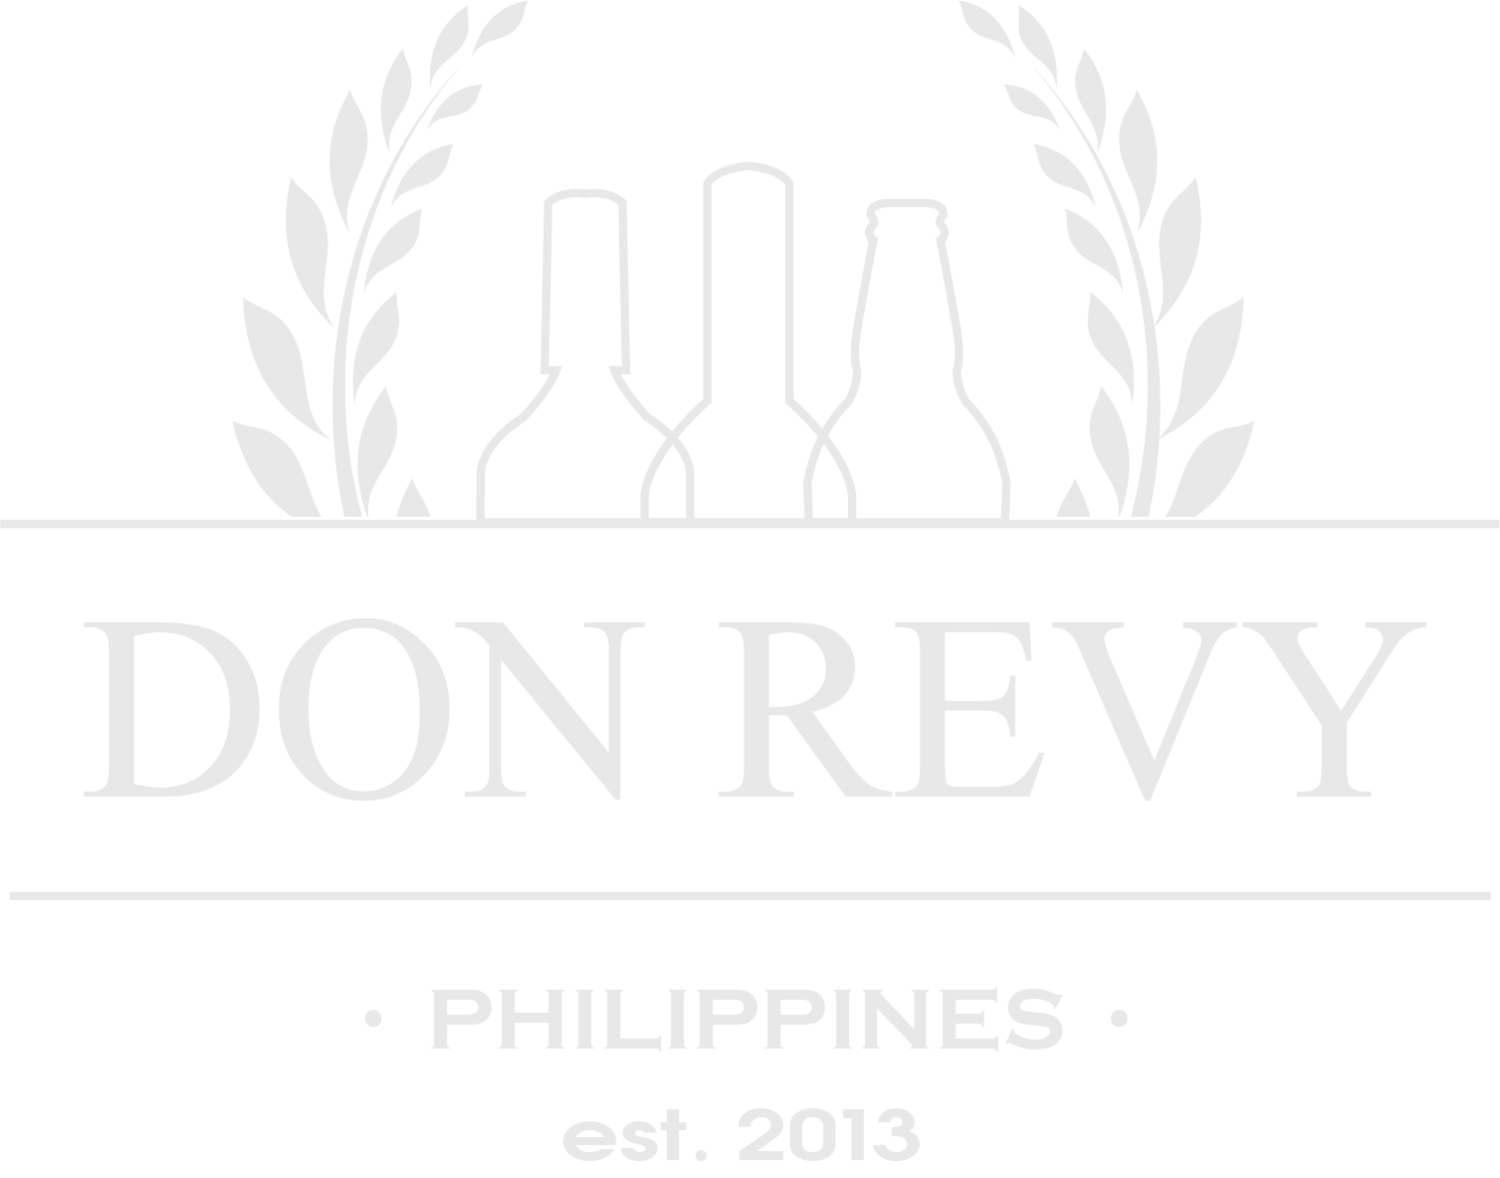 Don Revy Philippines, Inc.